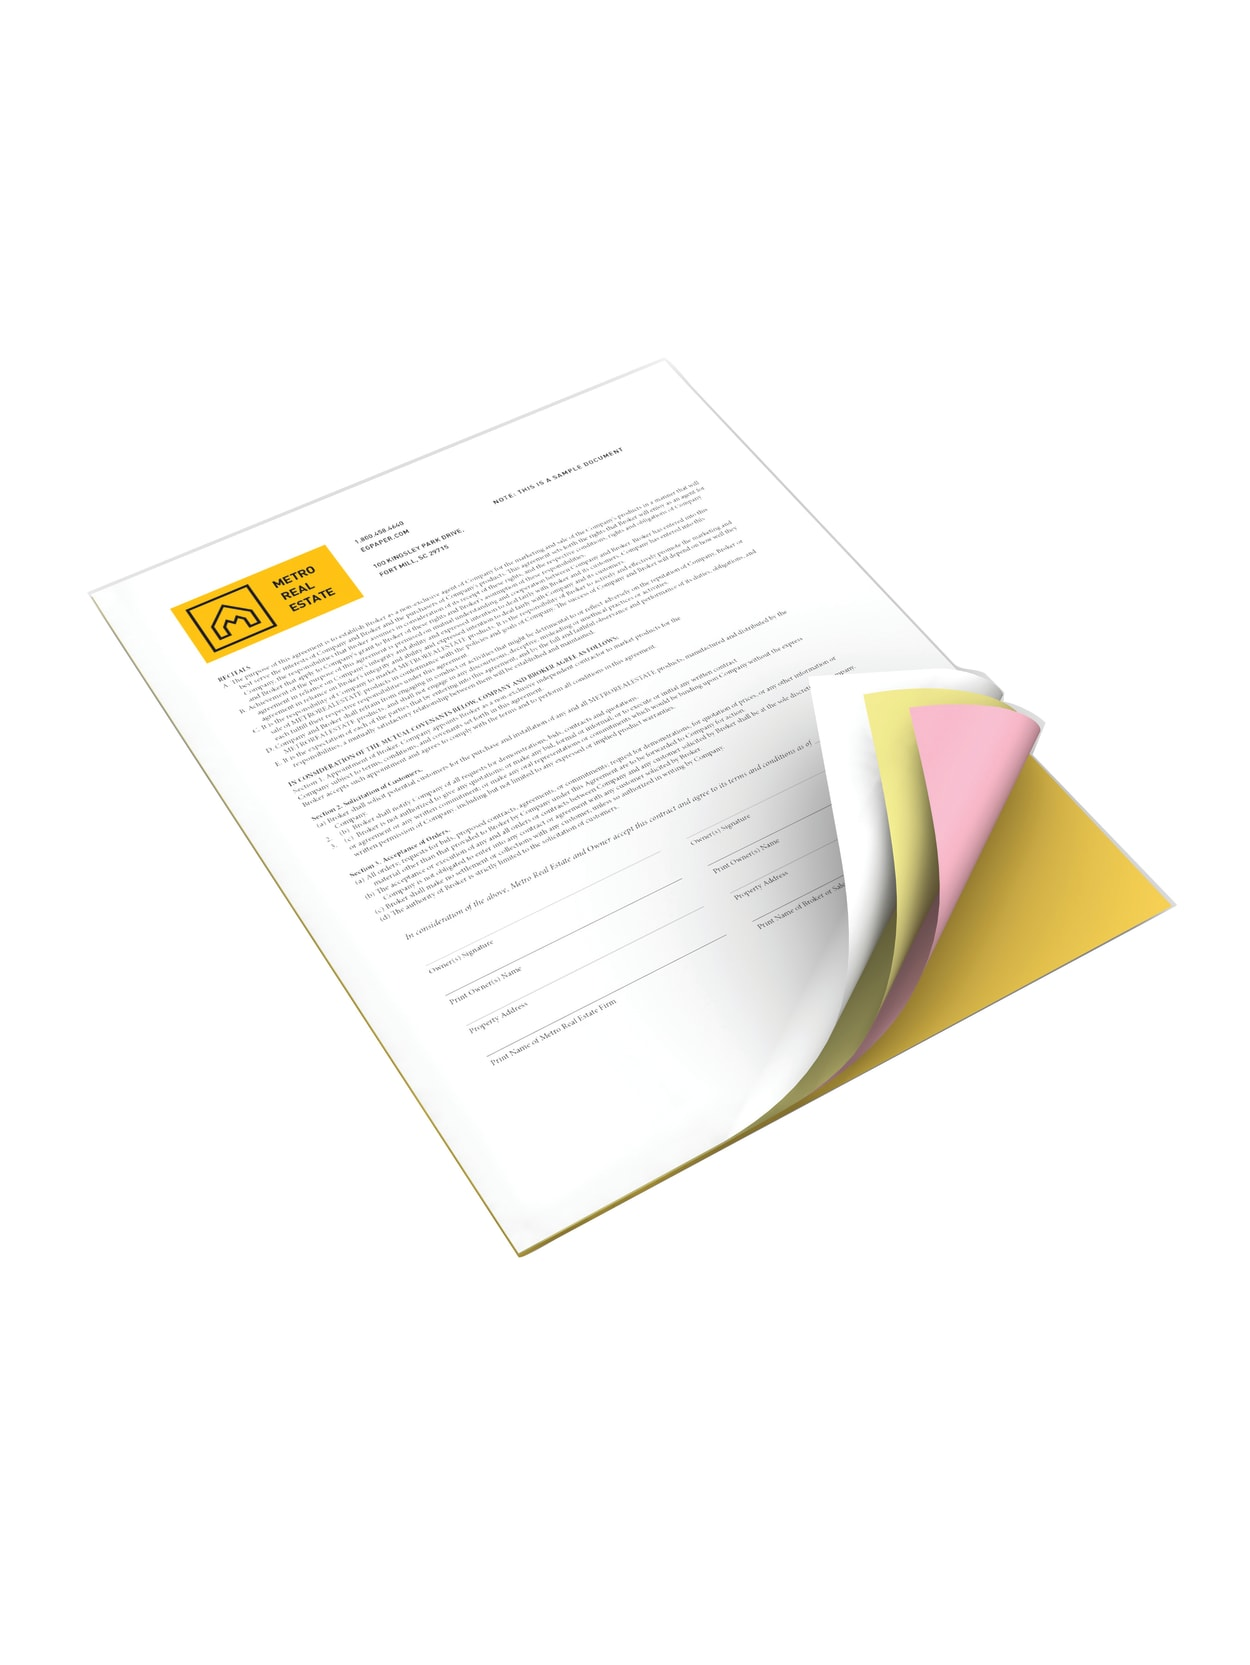 8 REAMS 4 Part Reverse 1000 Sets 4000 Sheets Ncr5915 White, Canary, Pink, Gold 8.5 x 11 Superior Carbonless Paper